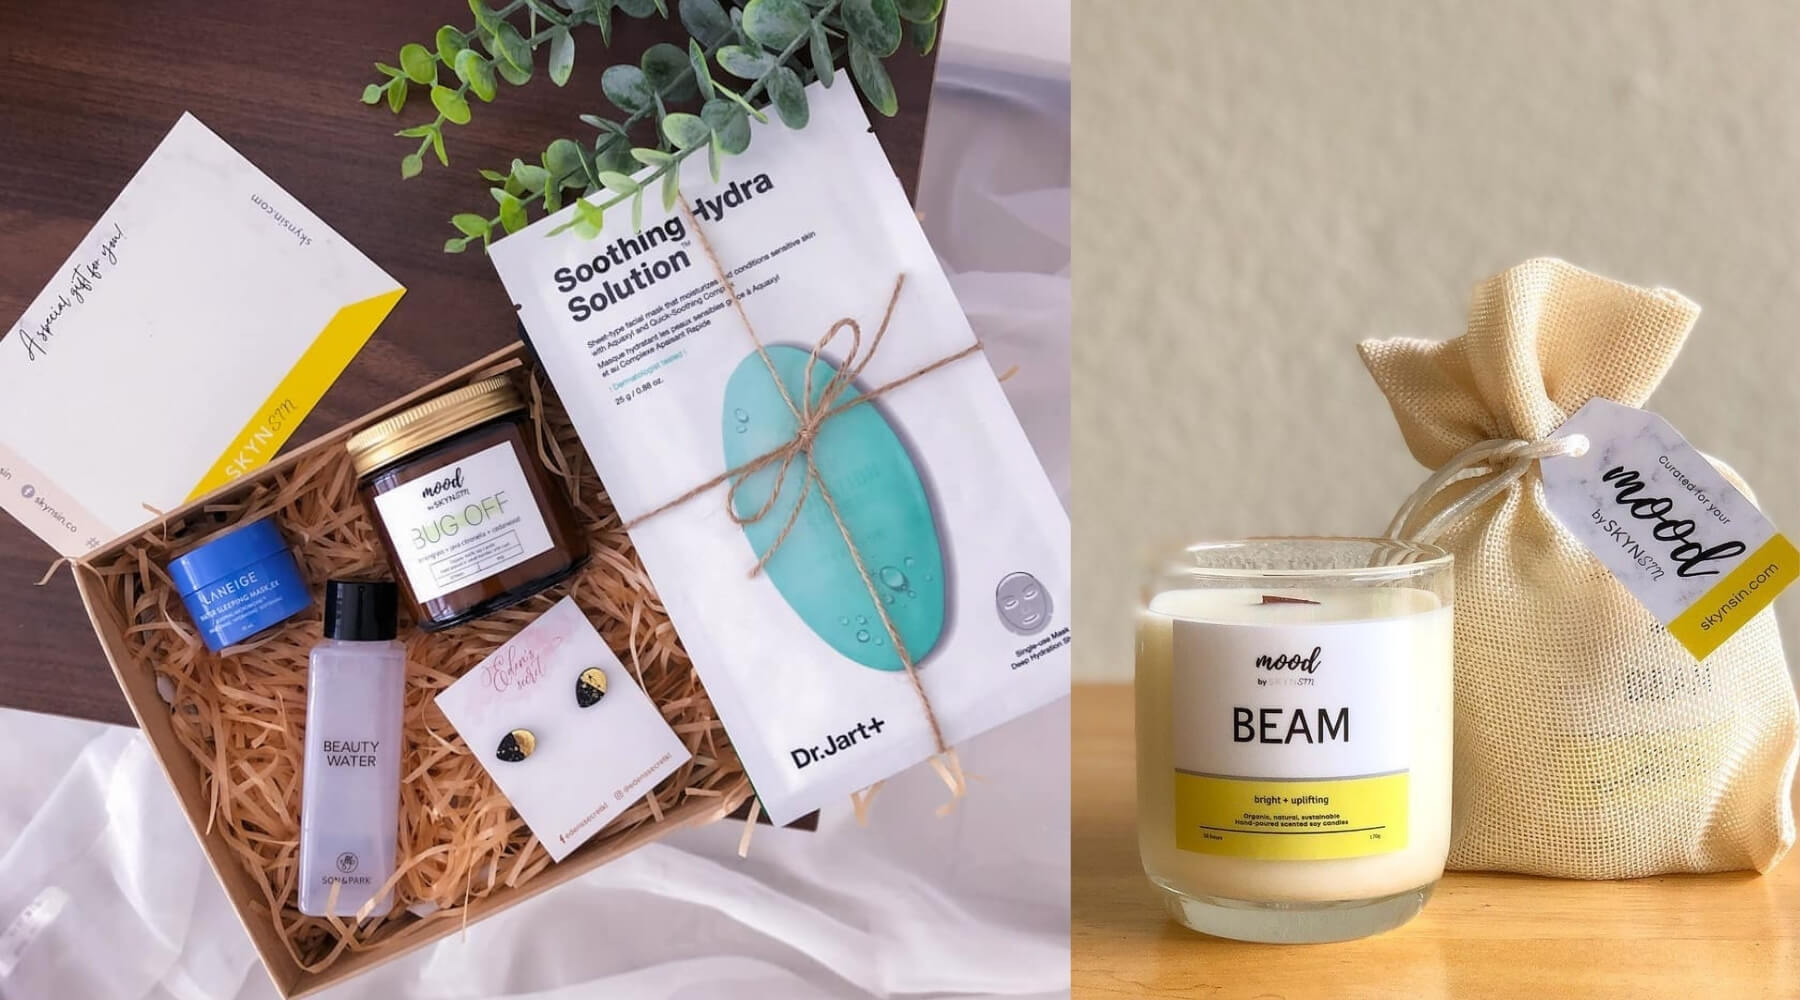 bloomthis-sapot-lokal-9-local-malaysian-brands-we-love-2021-09-skyn-sin-soy-candles-and-sheet-masks